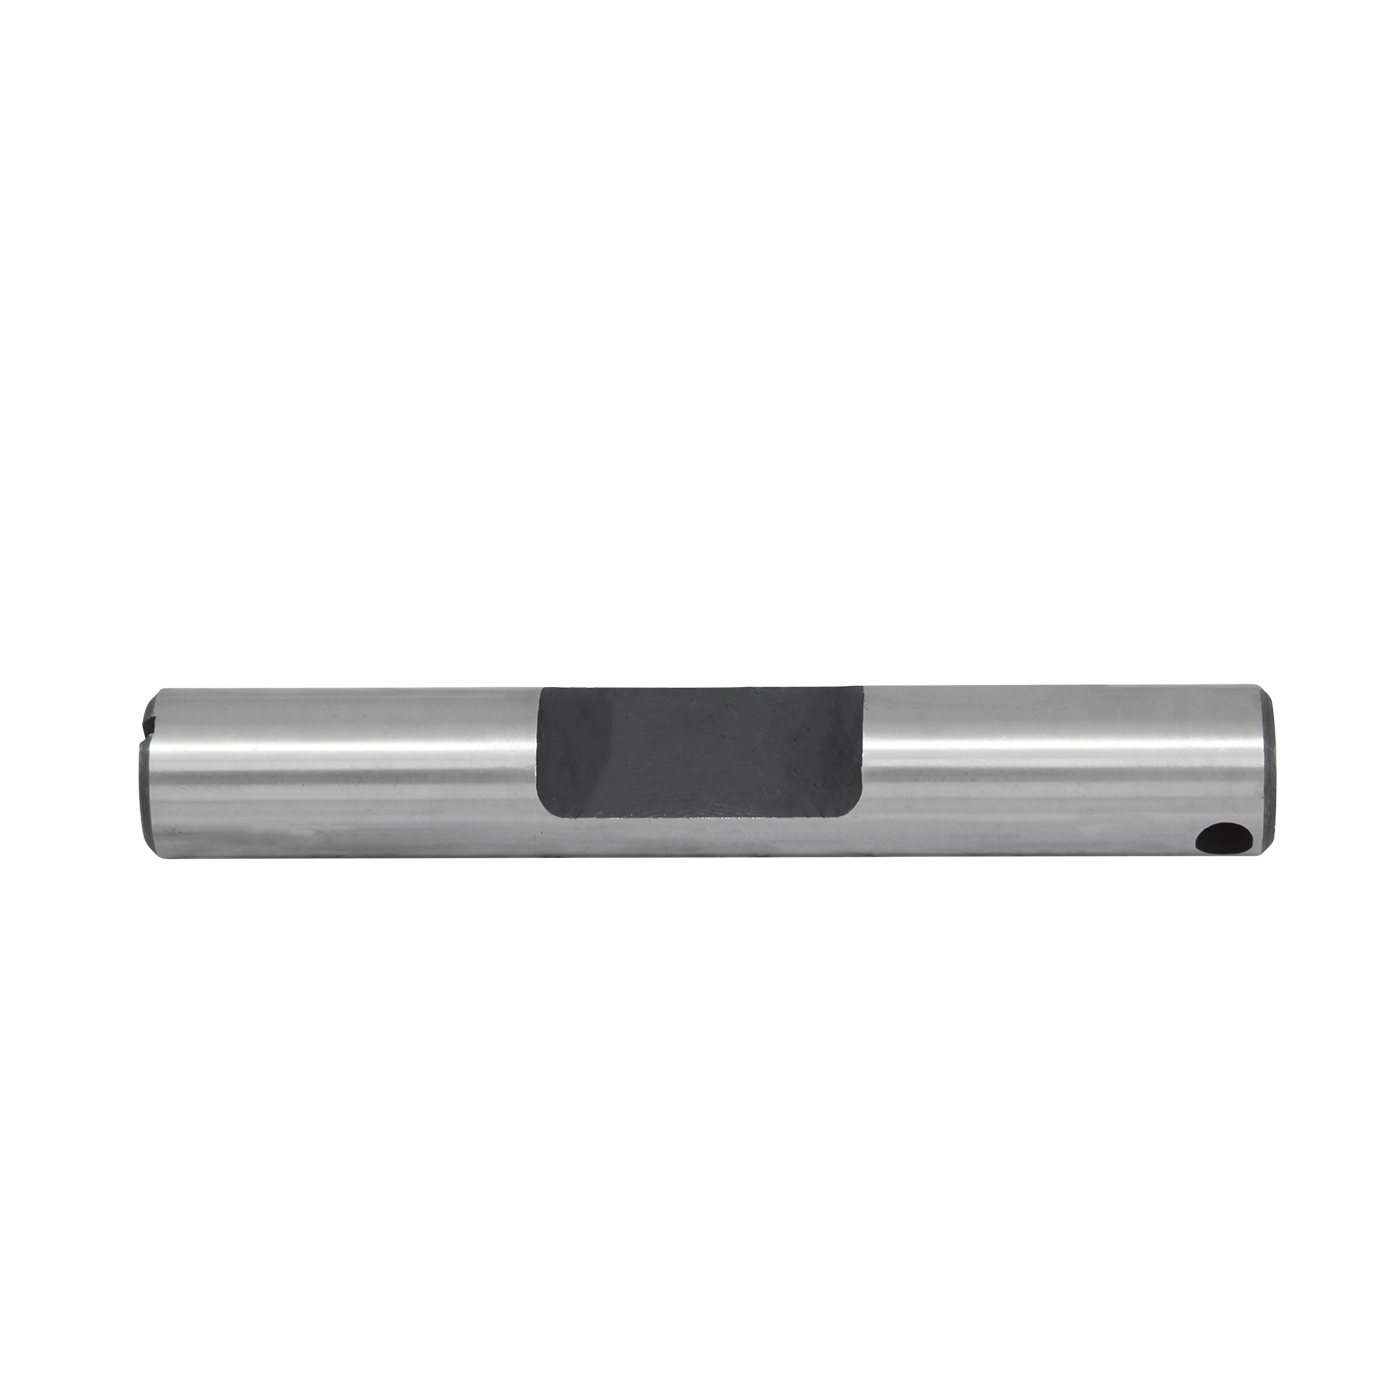 YSPXP-053 - Notched cross pin shaft for 12P and 12T GM